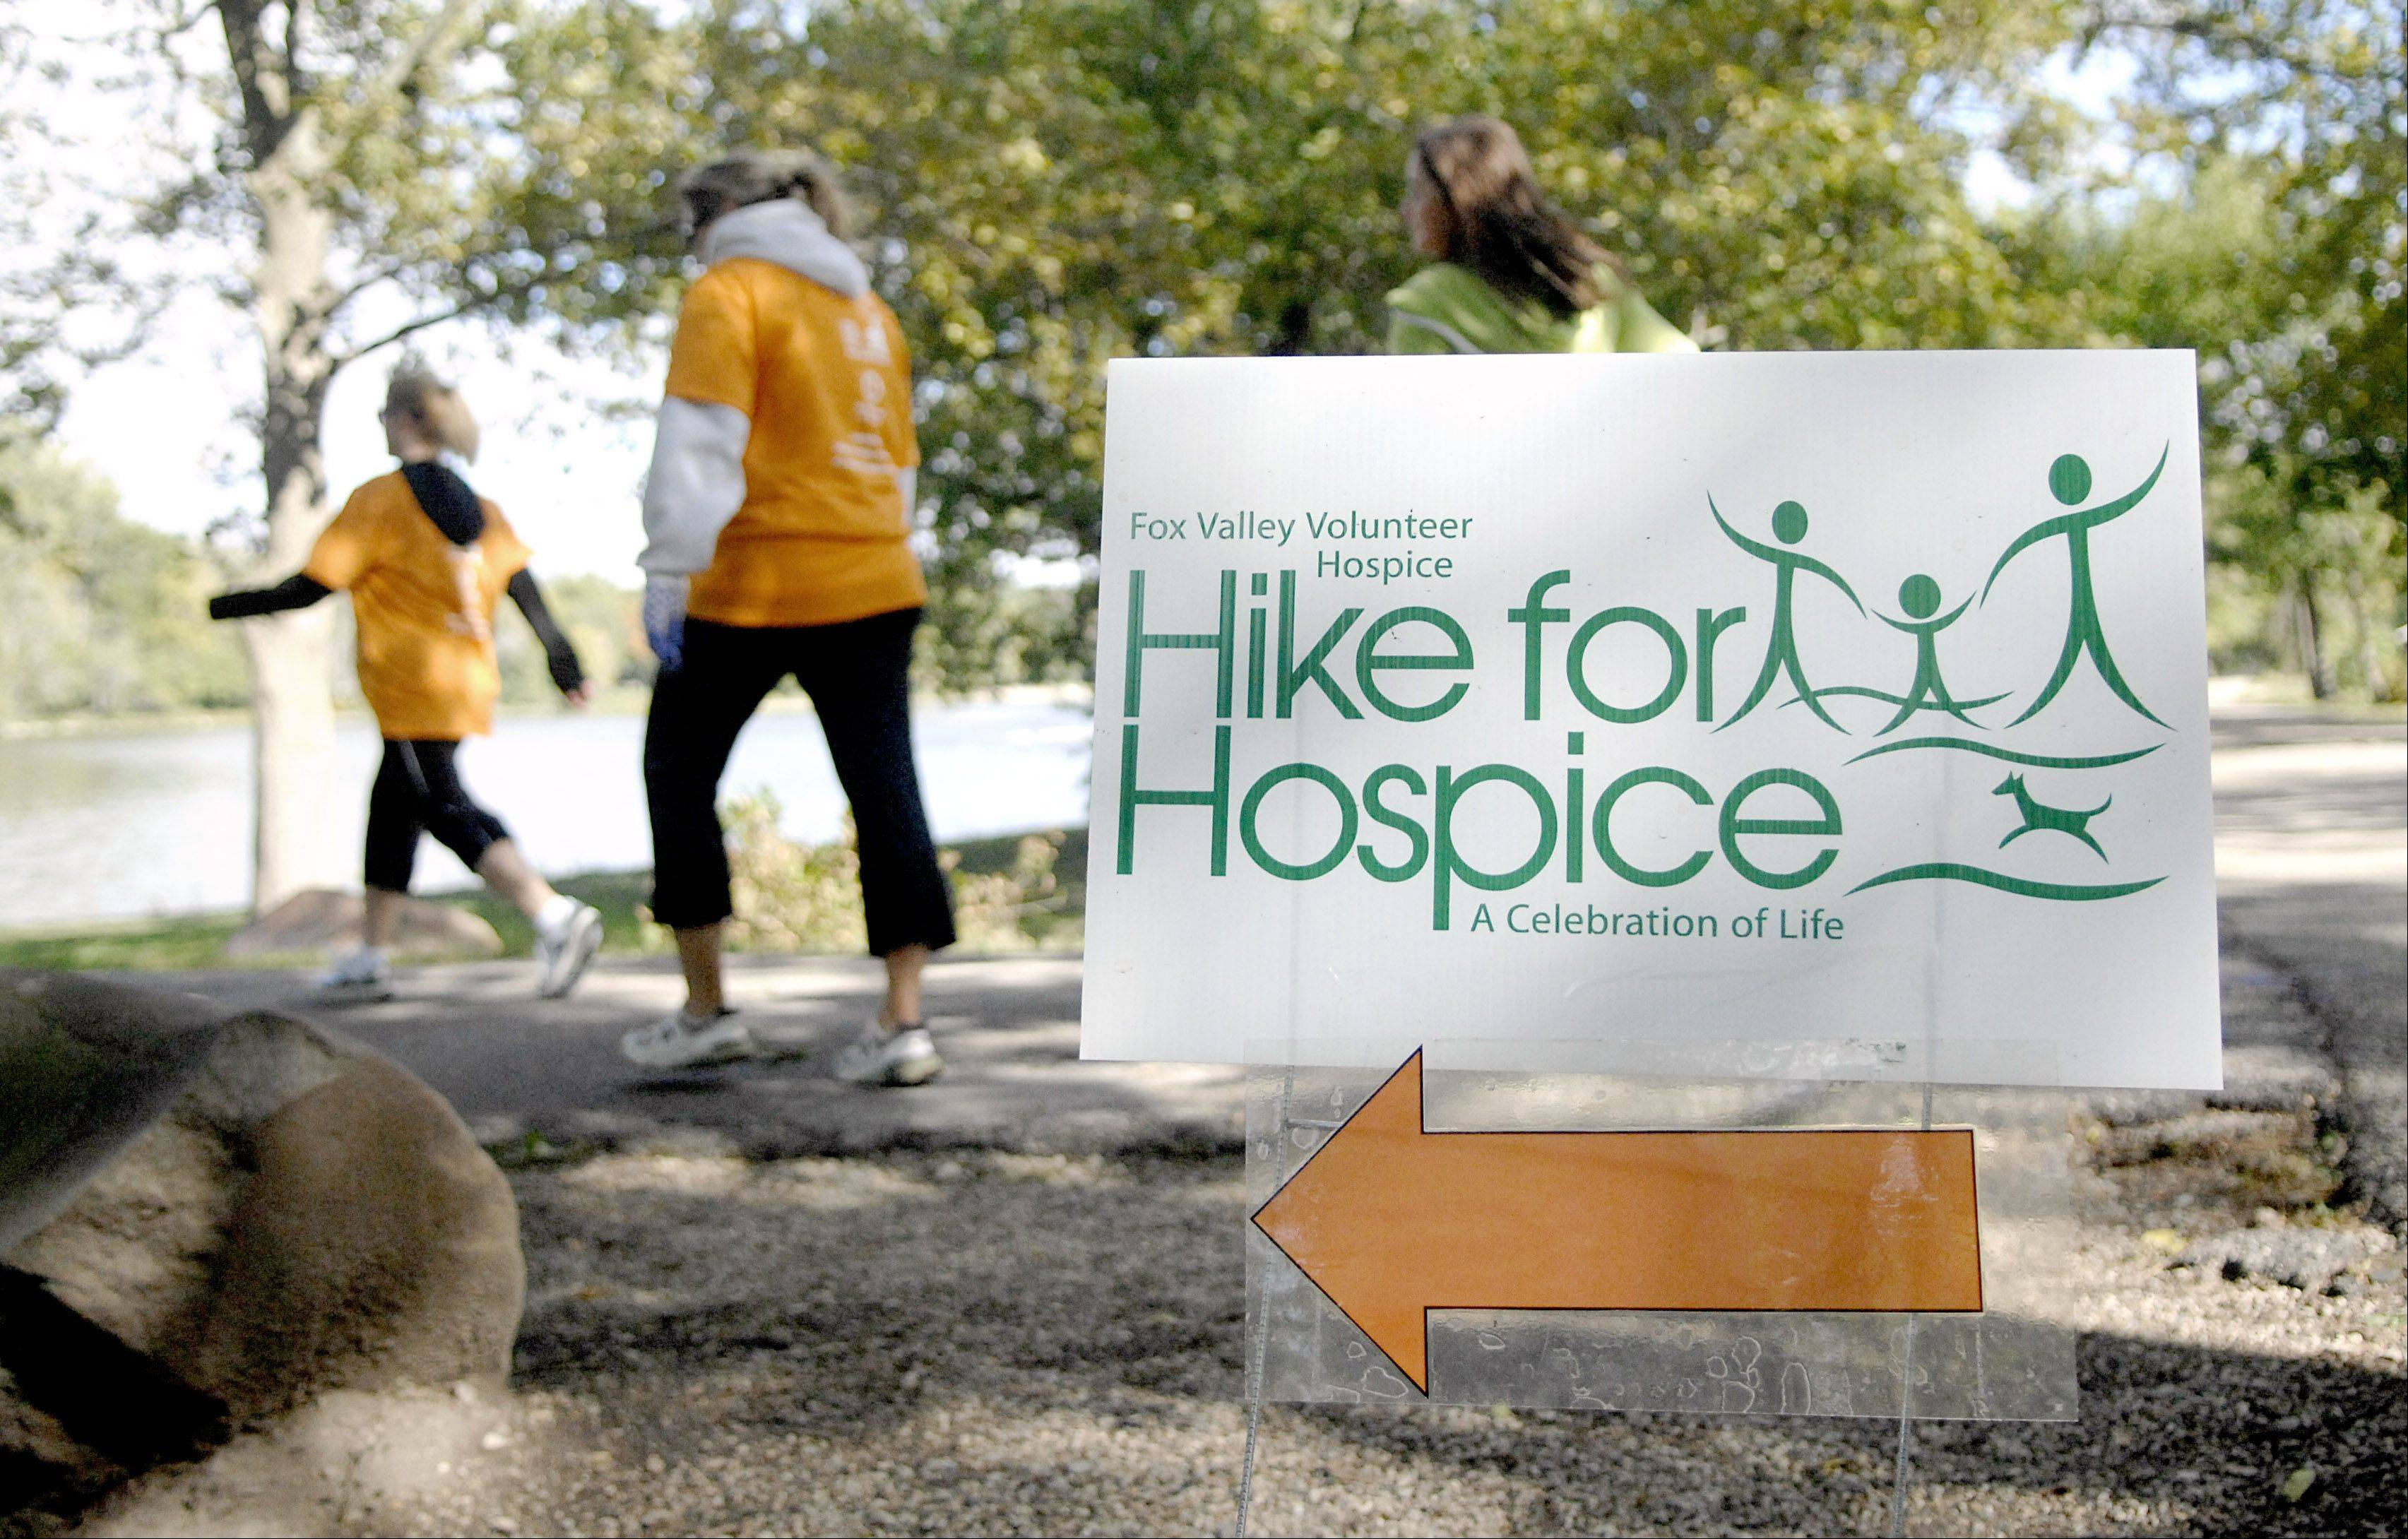 About 190 participants joined in Fox Valley Volunteer Hospice's sixth annual Hike for Hospice 5K on Saturday along the Fox River Trail in Batavia.